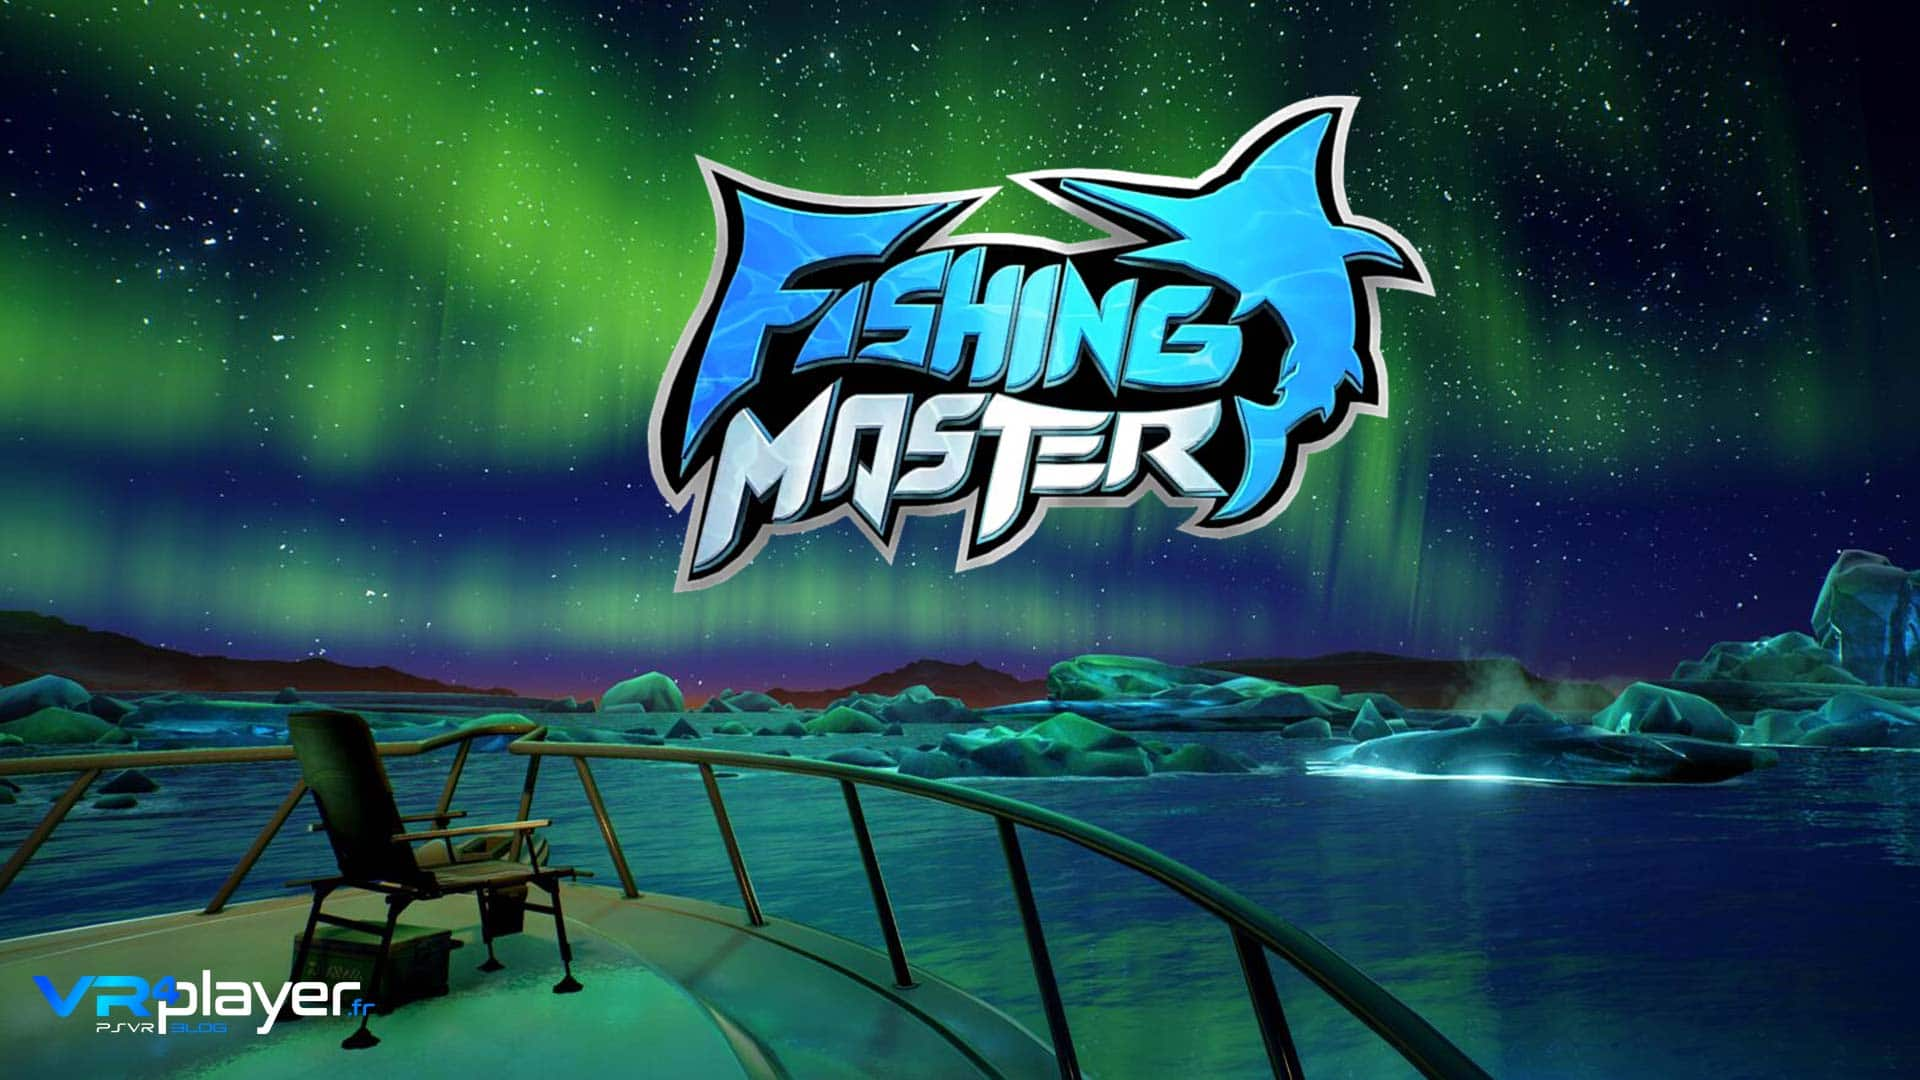 Fishing Master sur PSVR - vr4player.fr